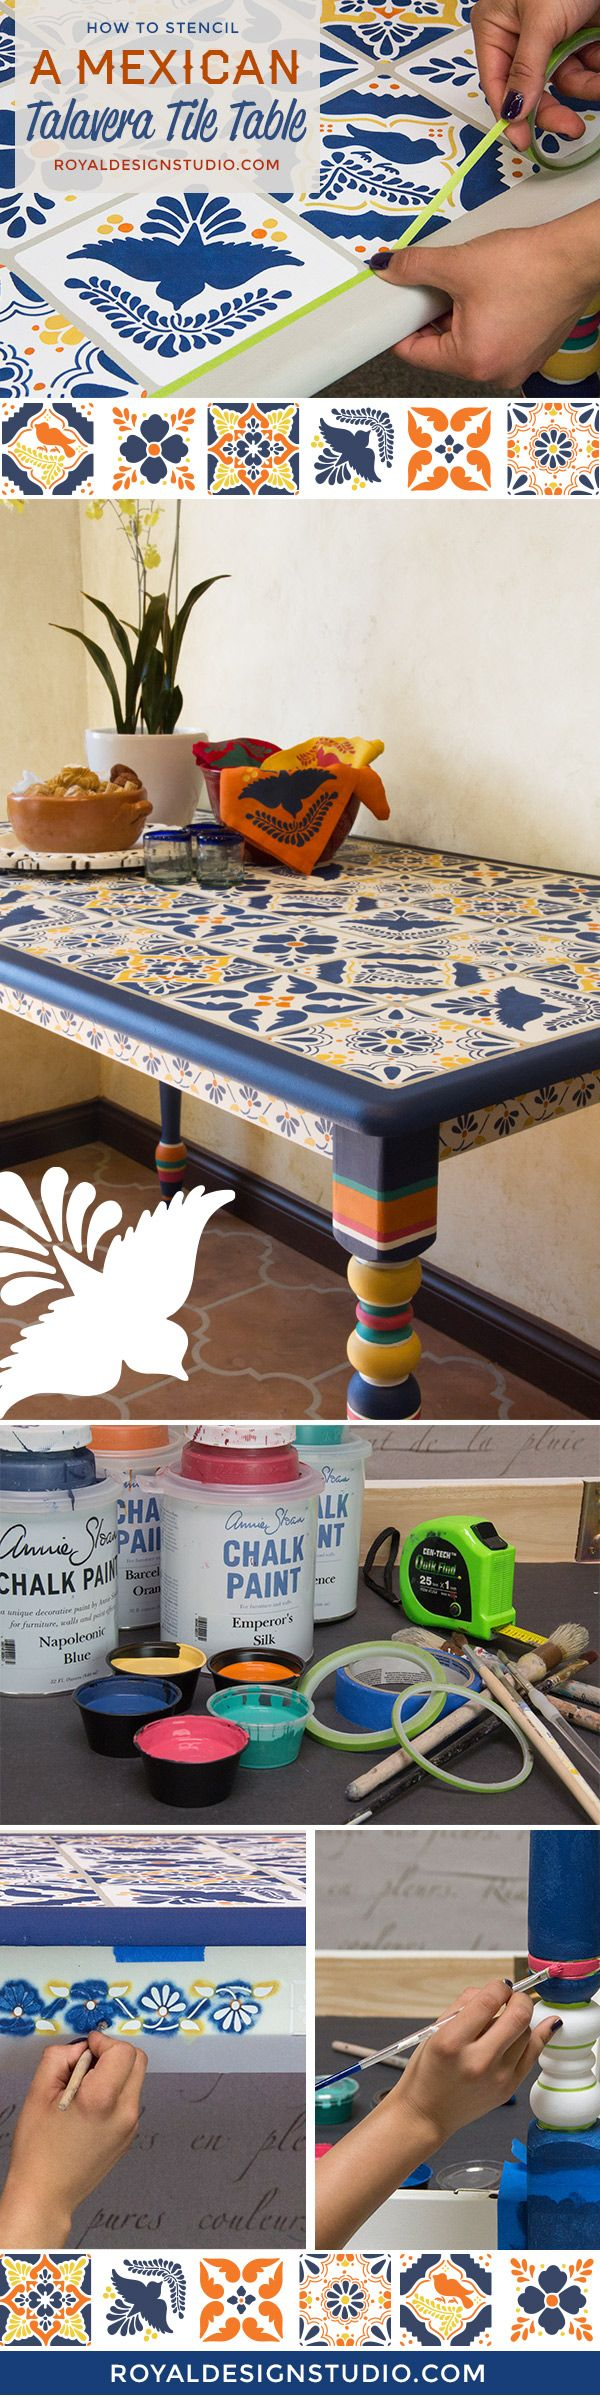 How To Stencil A Mexican Talavera Tile Table Diy Project  # Muebles Talavera